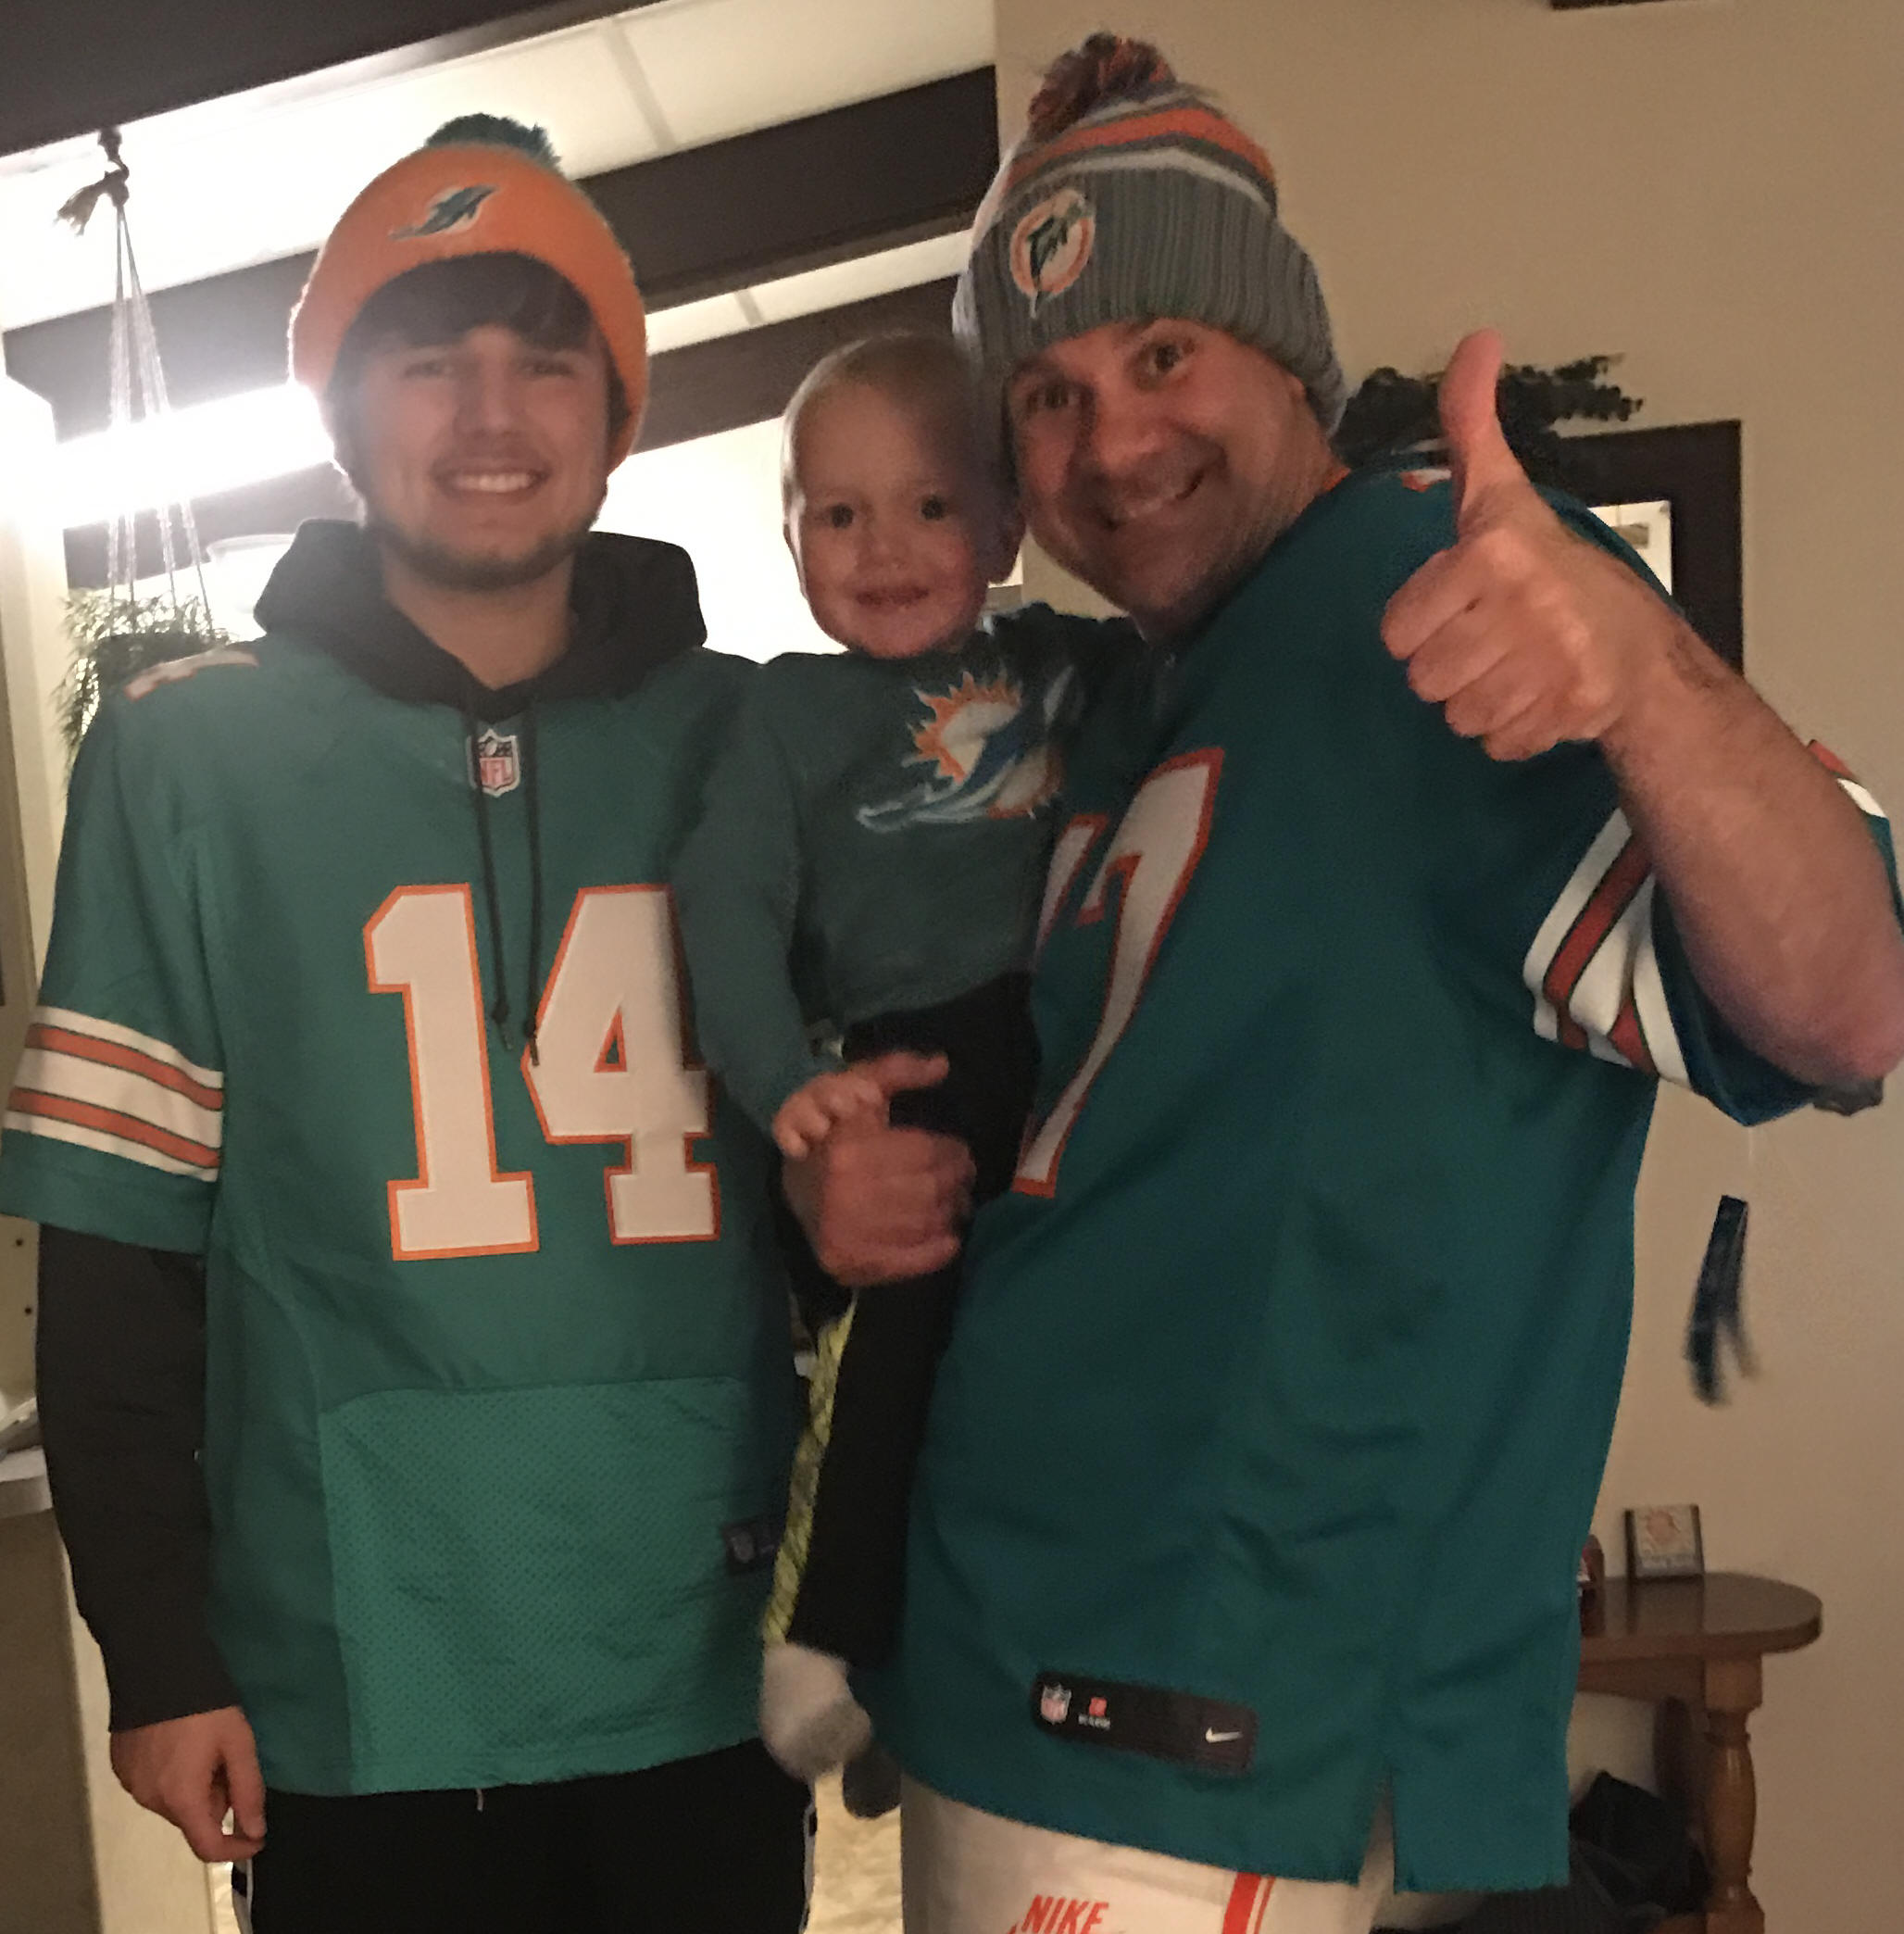 11-27-16 The nephews celebrate another Dolphin victory!